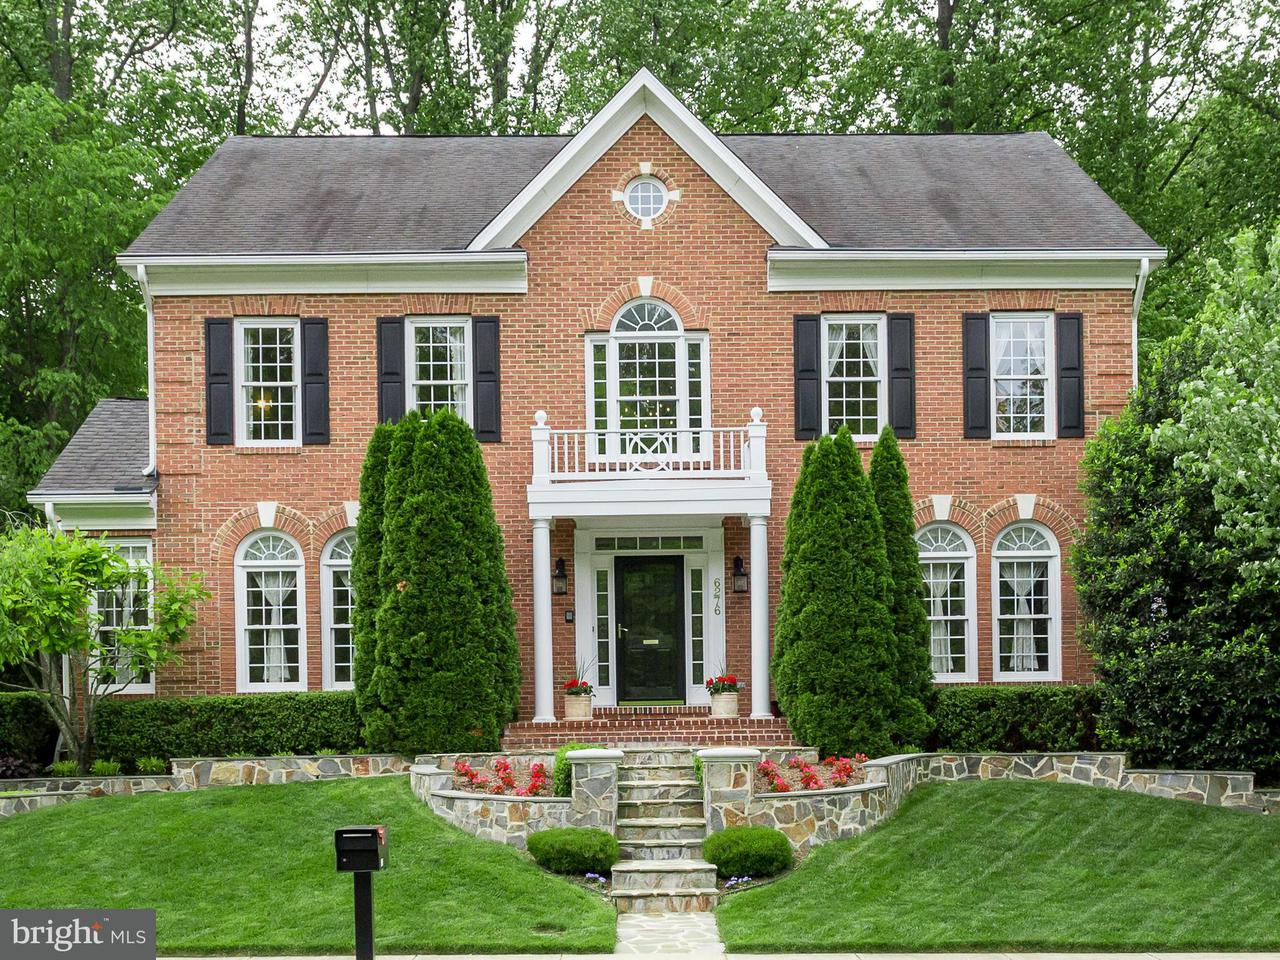 Casa Unifamiliar por un Venta en 6276 TIMARRON COVE Lane 6276 TIMARRON COVE Lane Burke, Virginia 22015 Estados Unidos